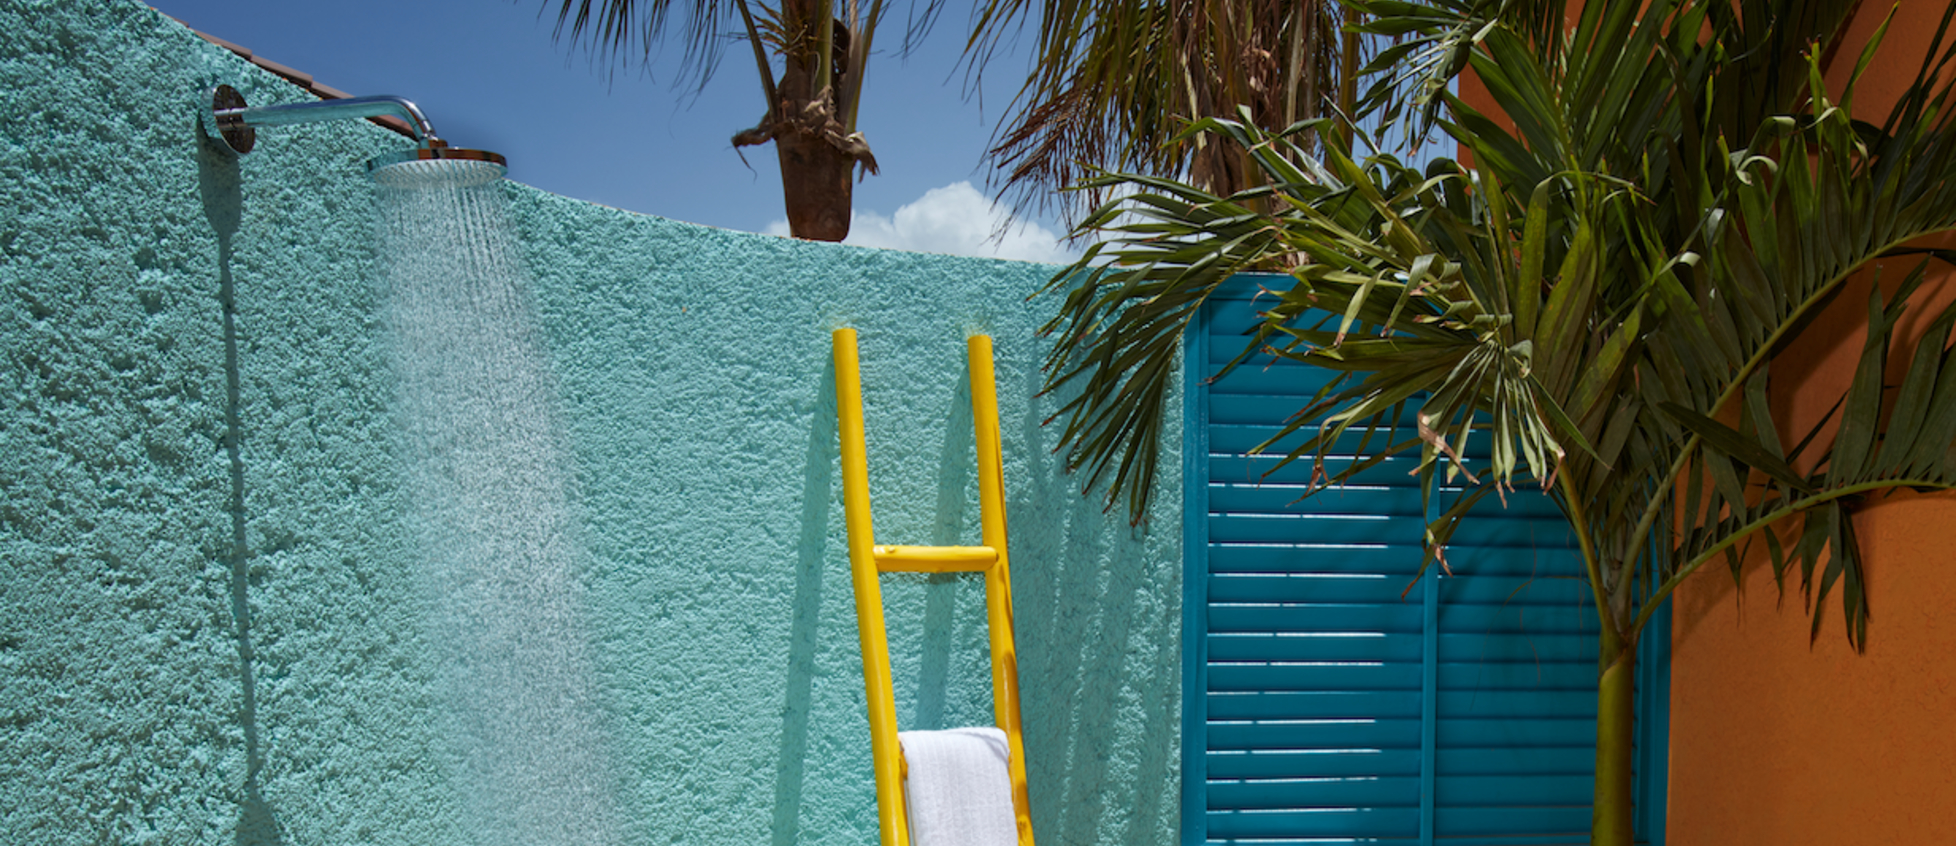 outdoor shower in coco casita